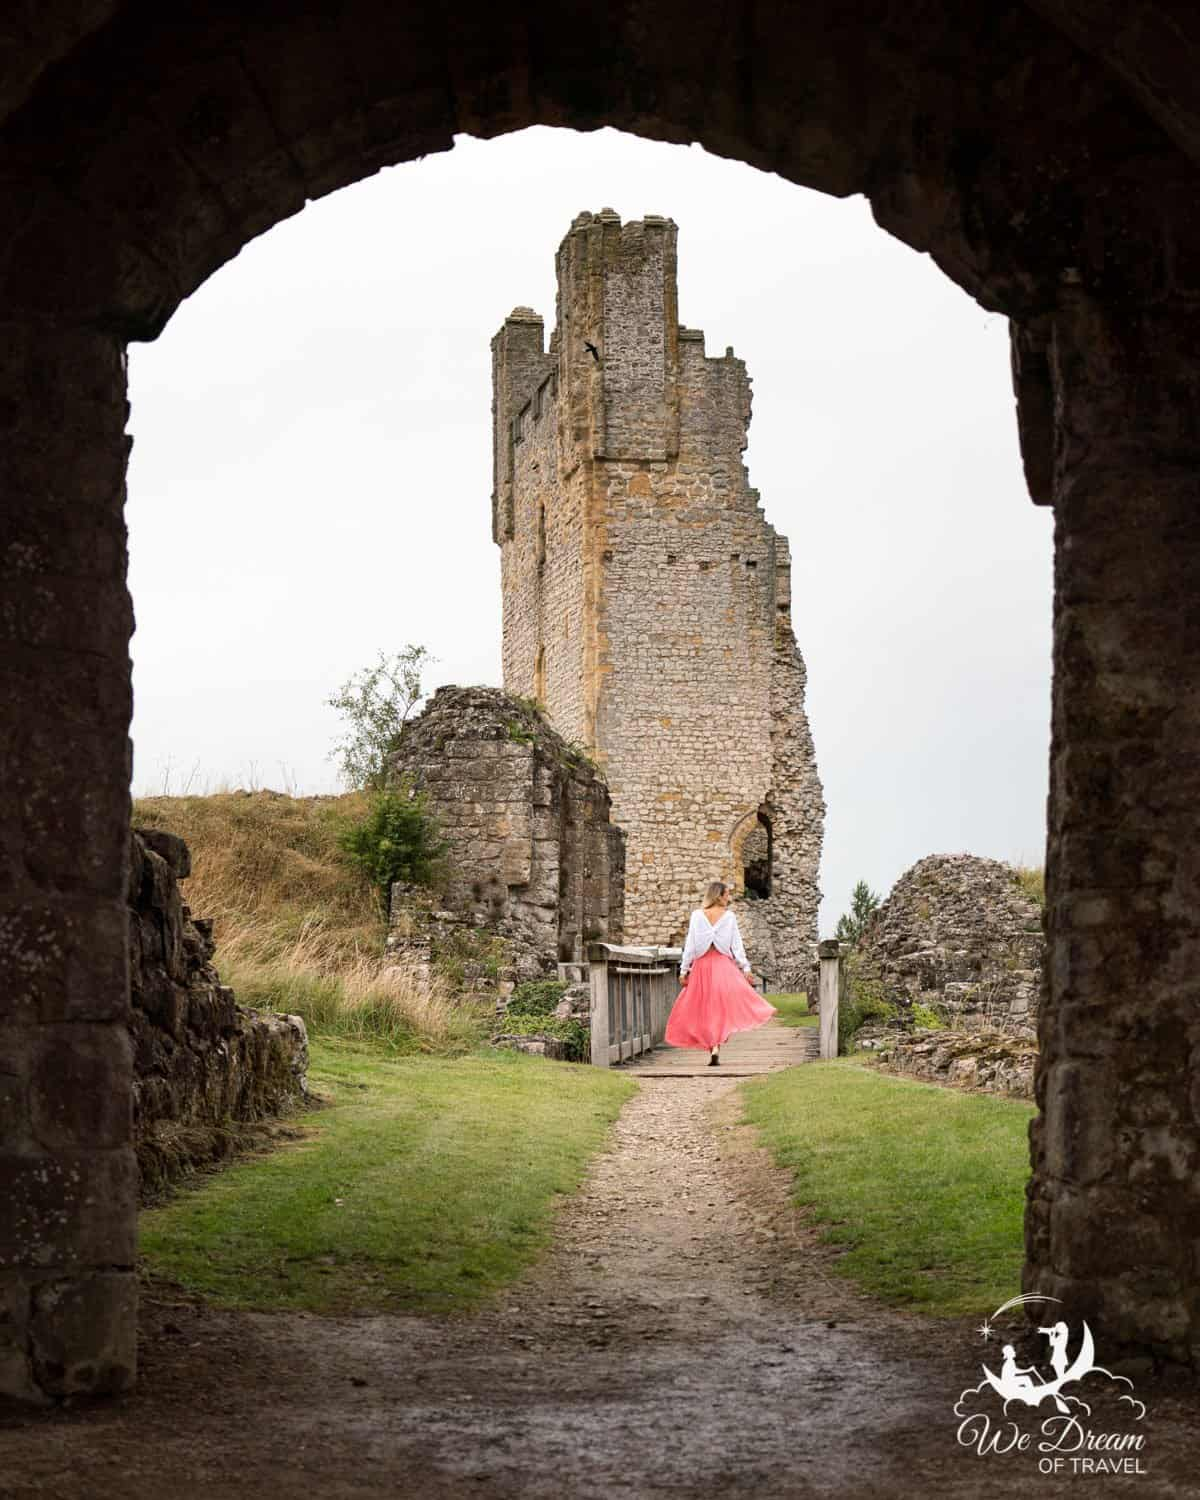 A girl framed by an archway in front of the tower of Helmsley Castle York